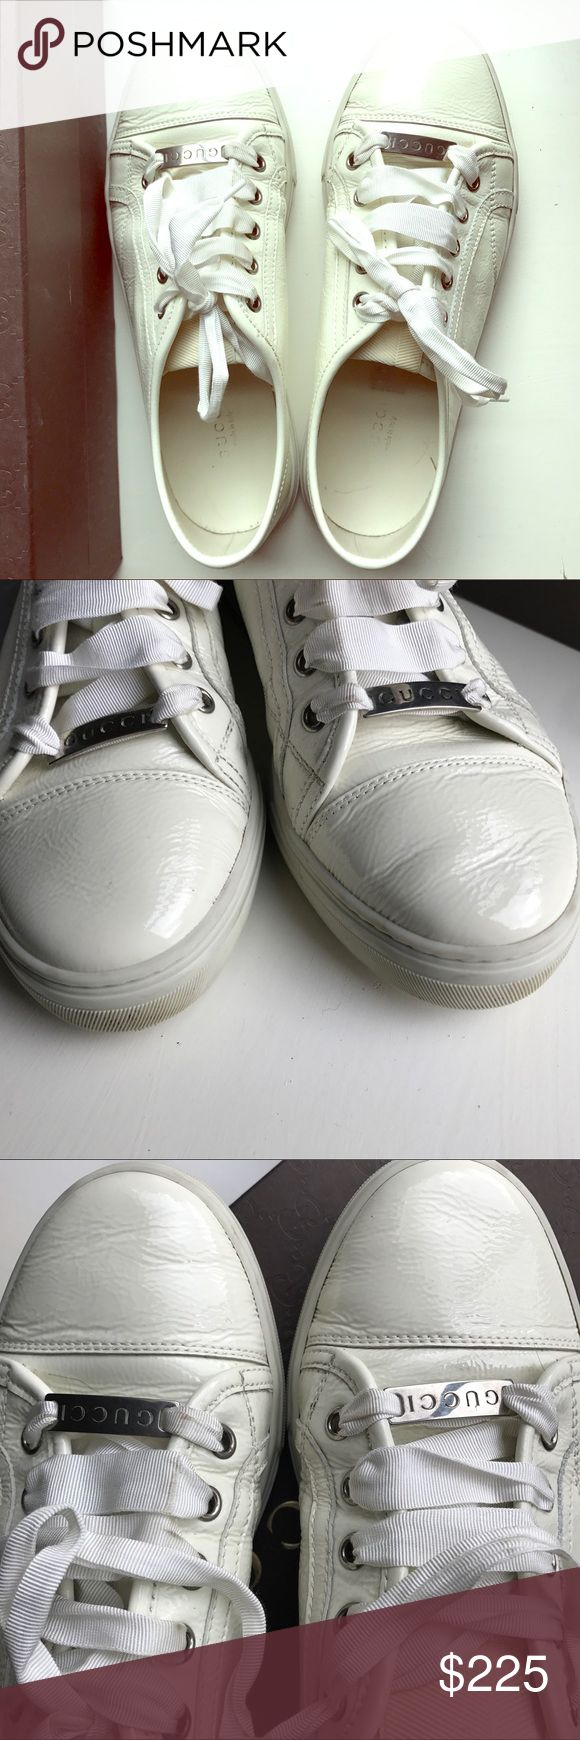 Gucci Sneakers Gucci White Sneaker, Excellent Condition. Size 38. Leather is in great condition. Silky, unique shoe strings are what caught my eye at store. Signs of wear mostly on rubber soles- which can be further cleaned! Comes with Original Box & Dust Bag. Purchased at Gucci Outlet In San Marcos, TX for $395. Only worn a handful of times. Just a tad too big for me. Please No Holds or Trades. Only selling on Posh. Price is Firm. Gucci Shoes Flats & Loafers